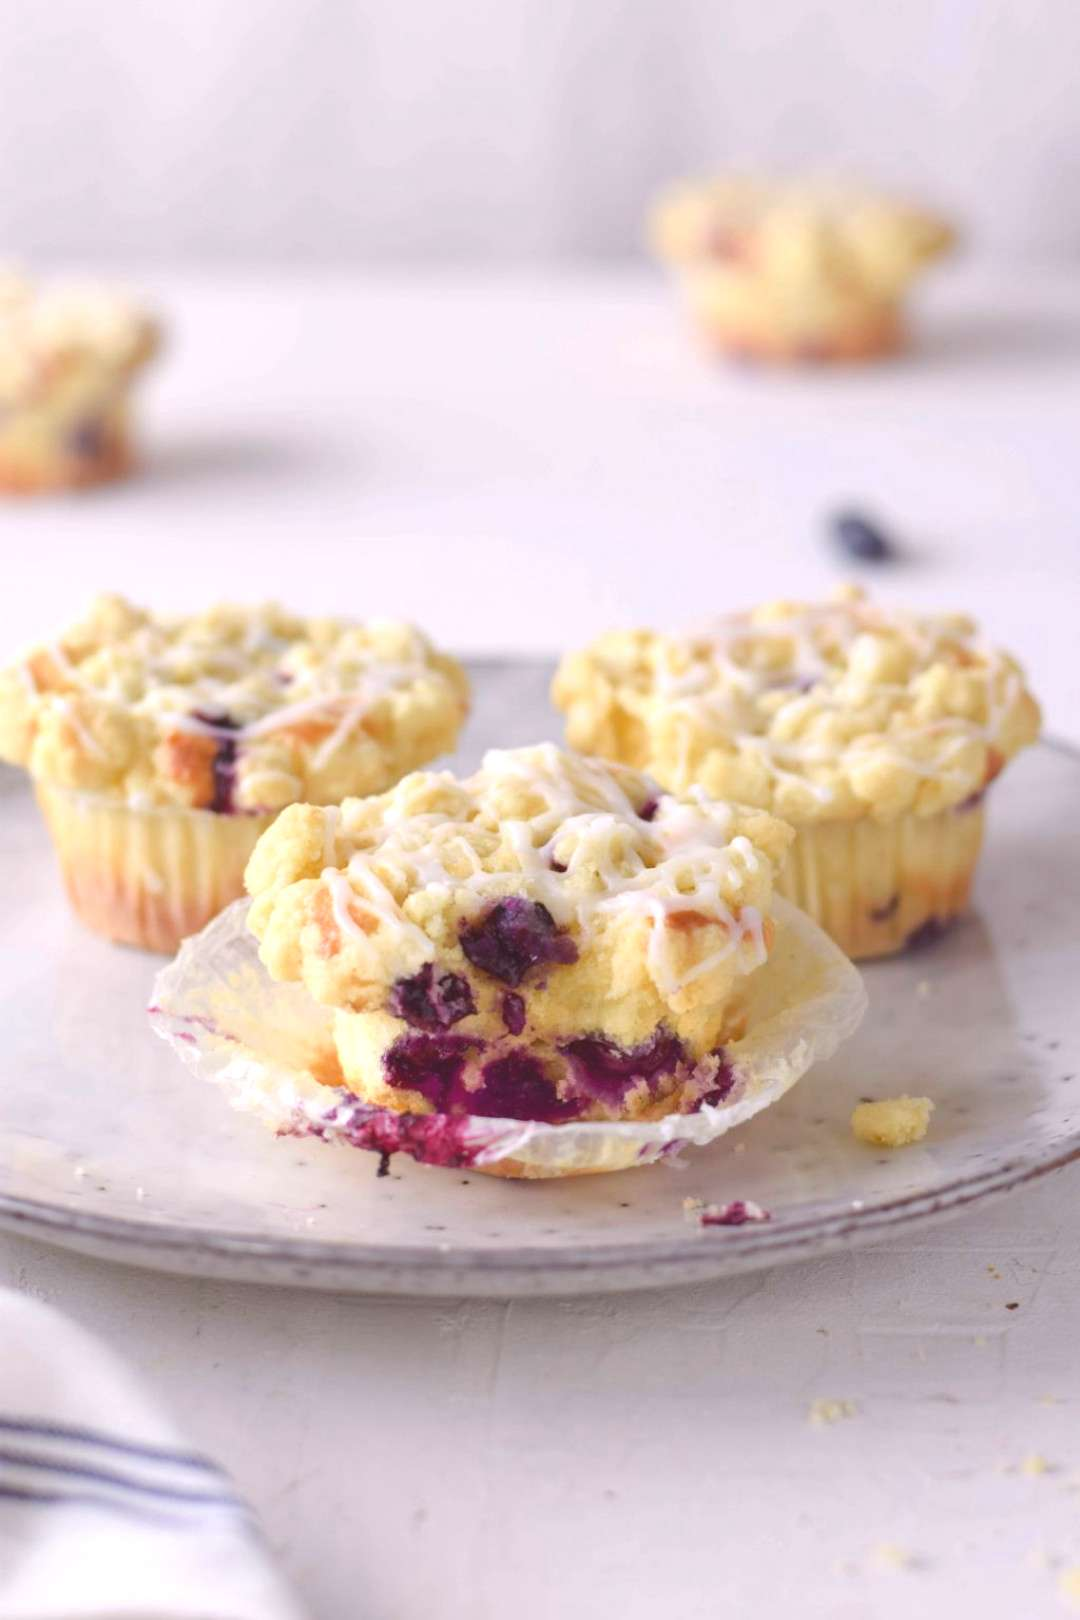 Juicy blueberry crumble muffins - cakes for the office#blueberry